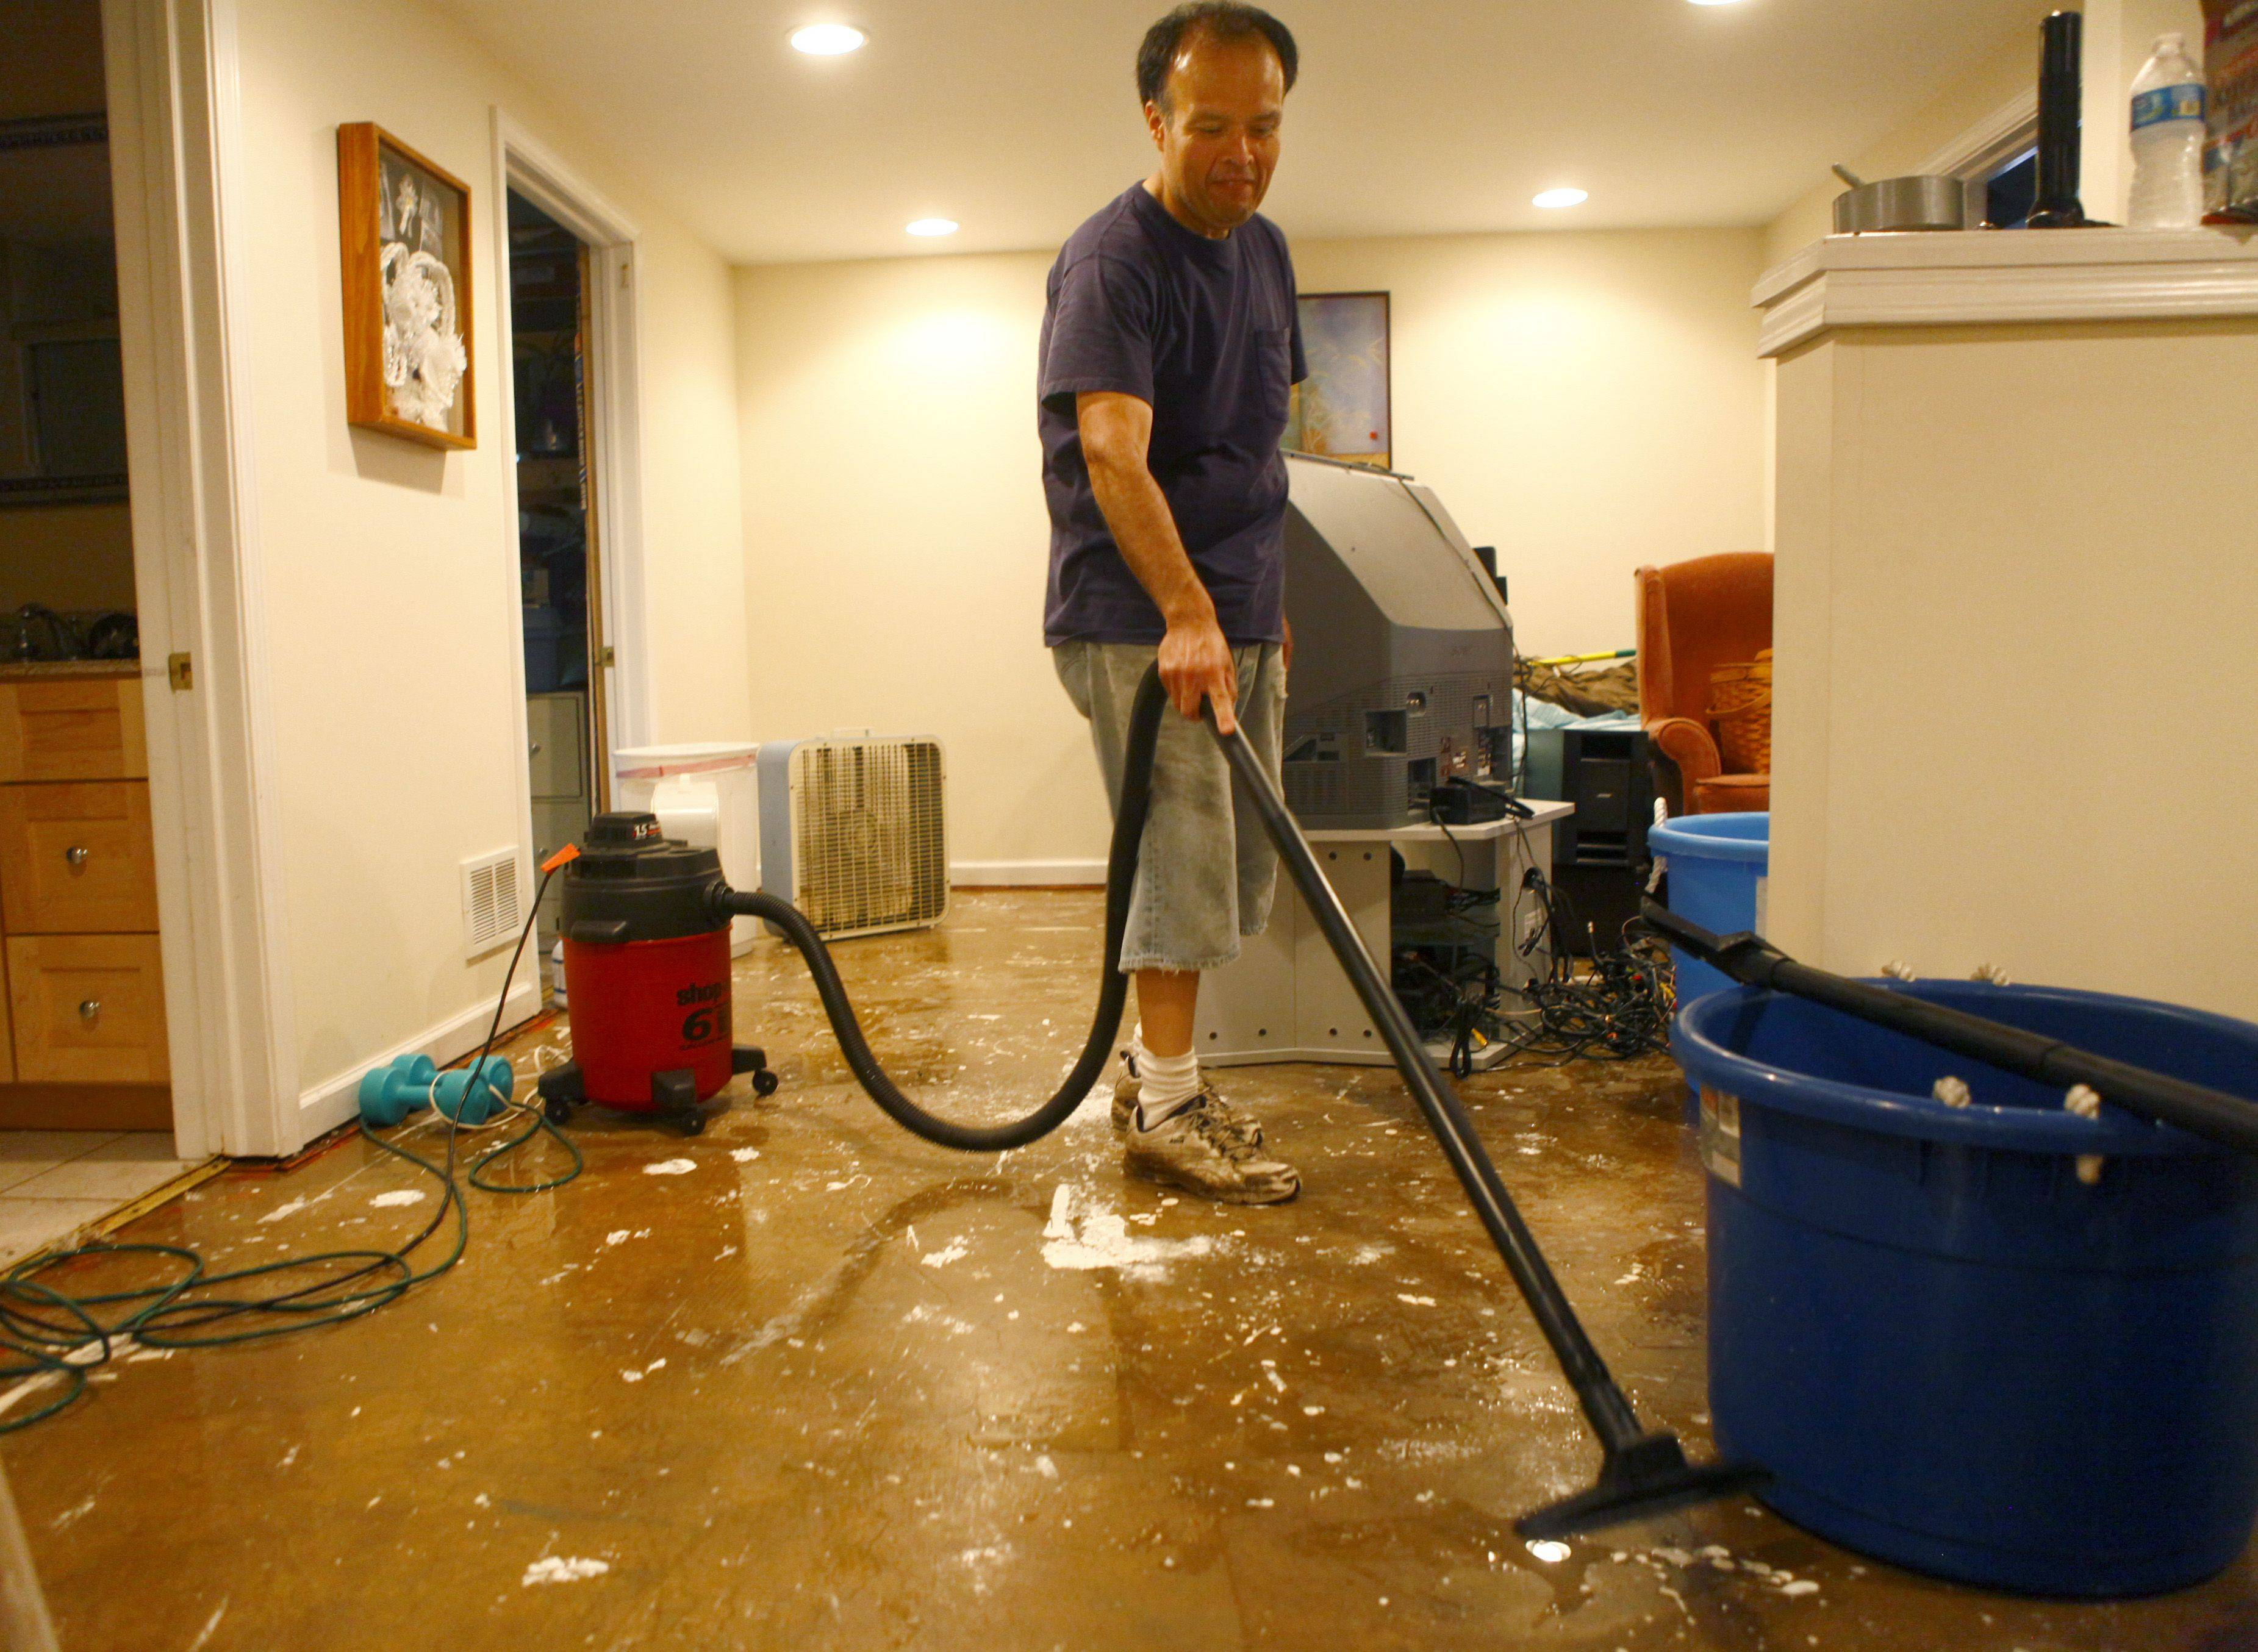 John Mesa vacuums the water off the ground in his brothers basement, in Mt. Prospect Saturday morning. There was about 6 inches of water this morning in his basment. Bill Mesa said his basement has never flooded like this before. They started the clean-up efforts at 5 this morning.